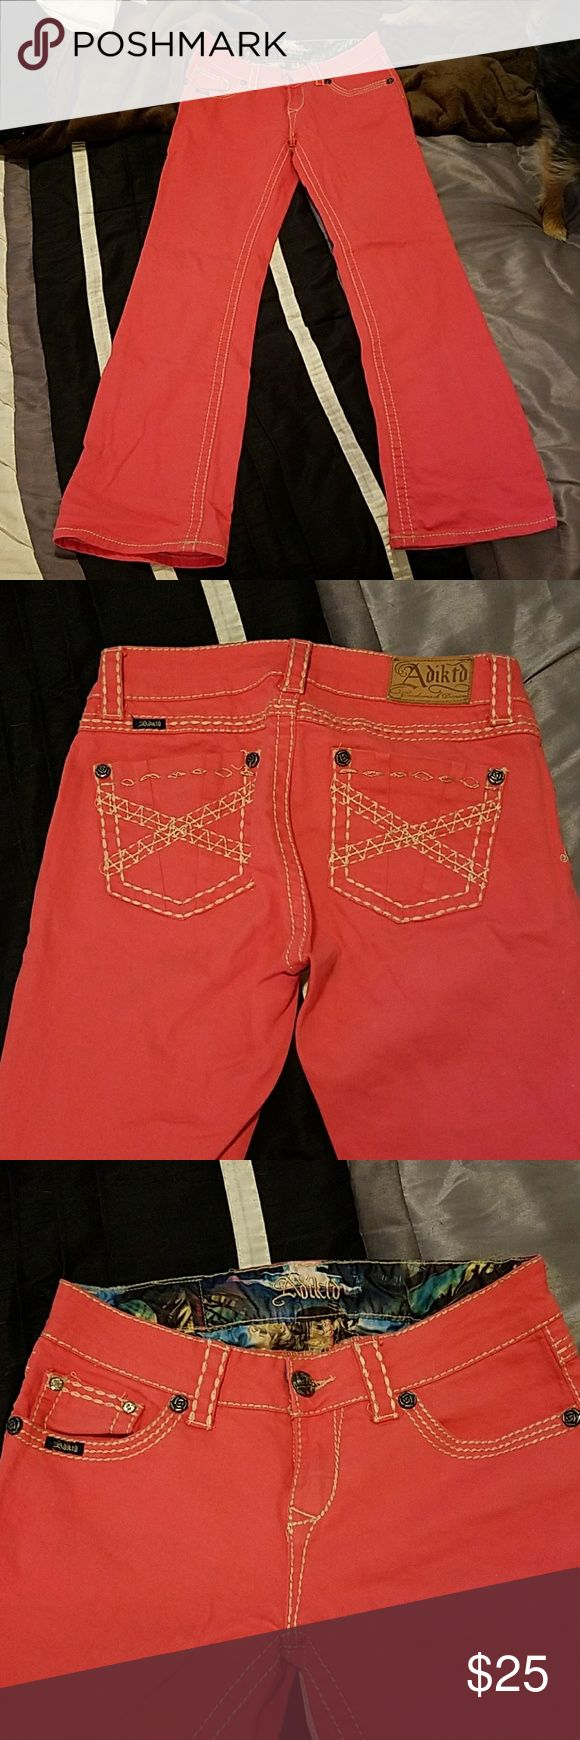 Coral colored boot cut jeans Like new boot cut jeans. Worn them once. My body type doesnt go well with coral boot cut :) cute butt pockets and rose and diamond buttons Jeans Boot Cut